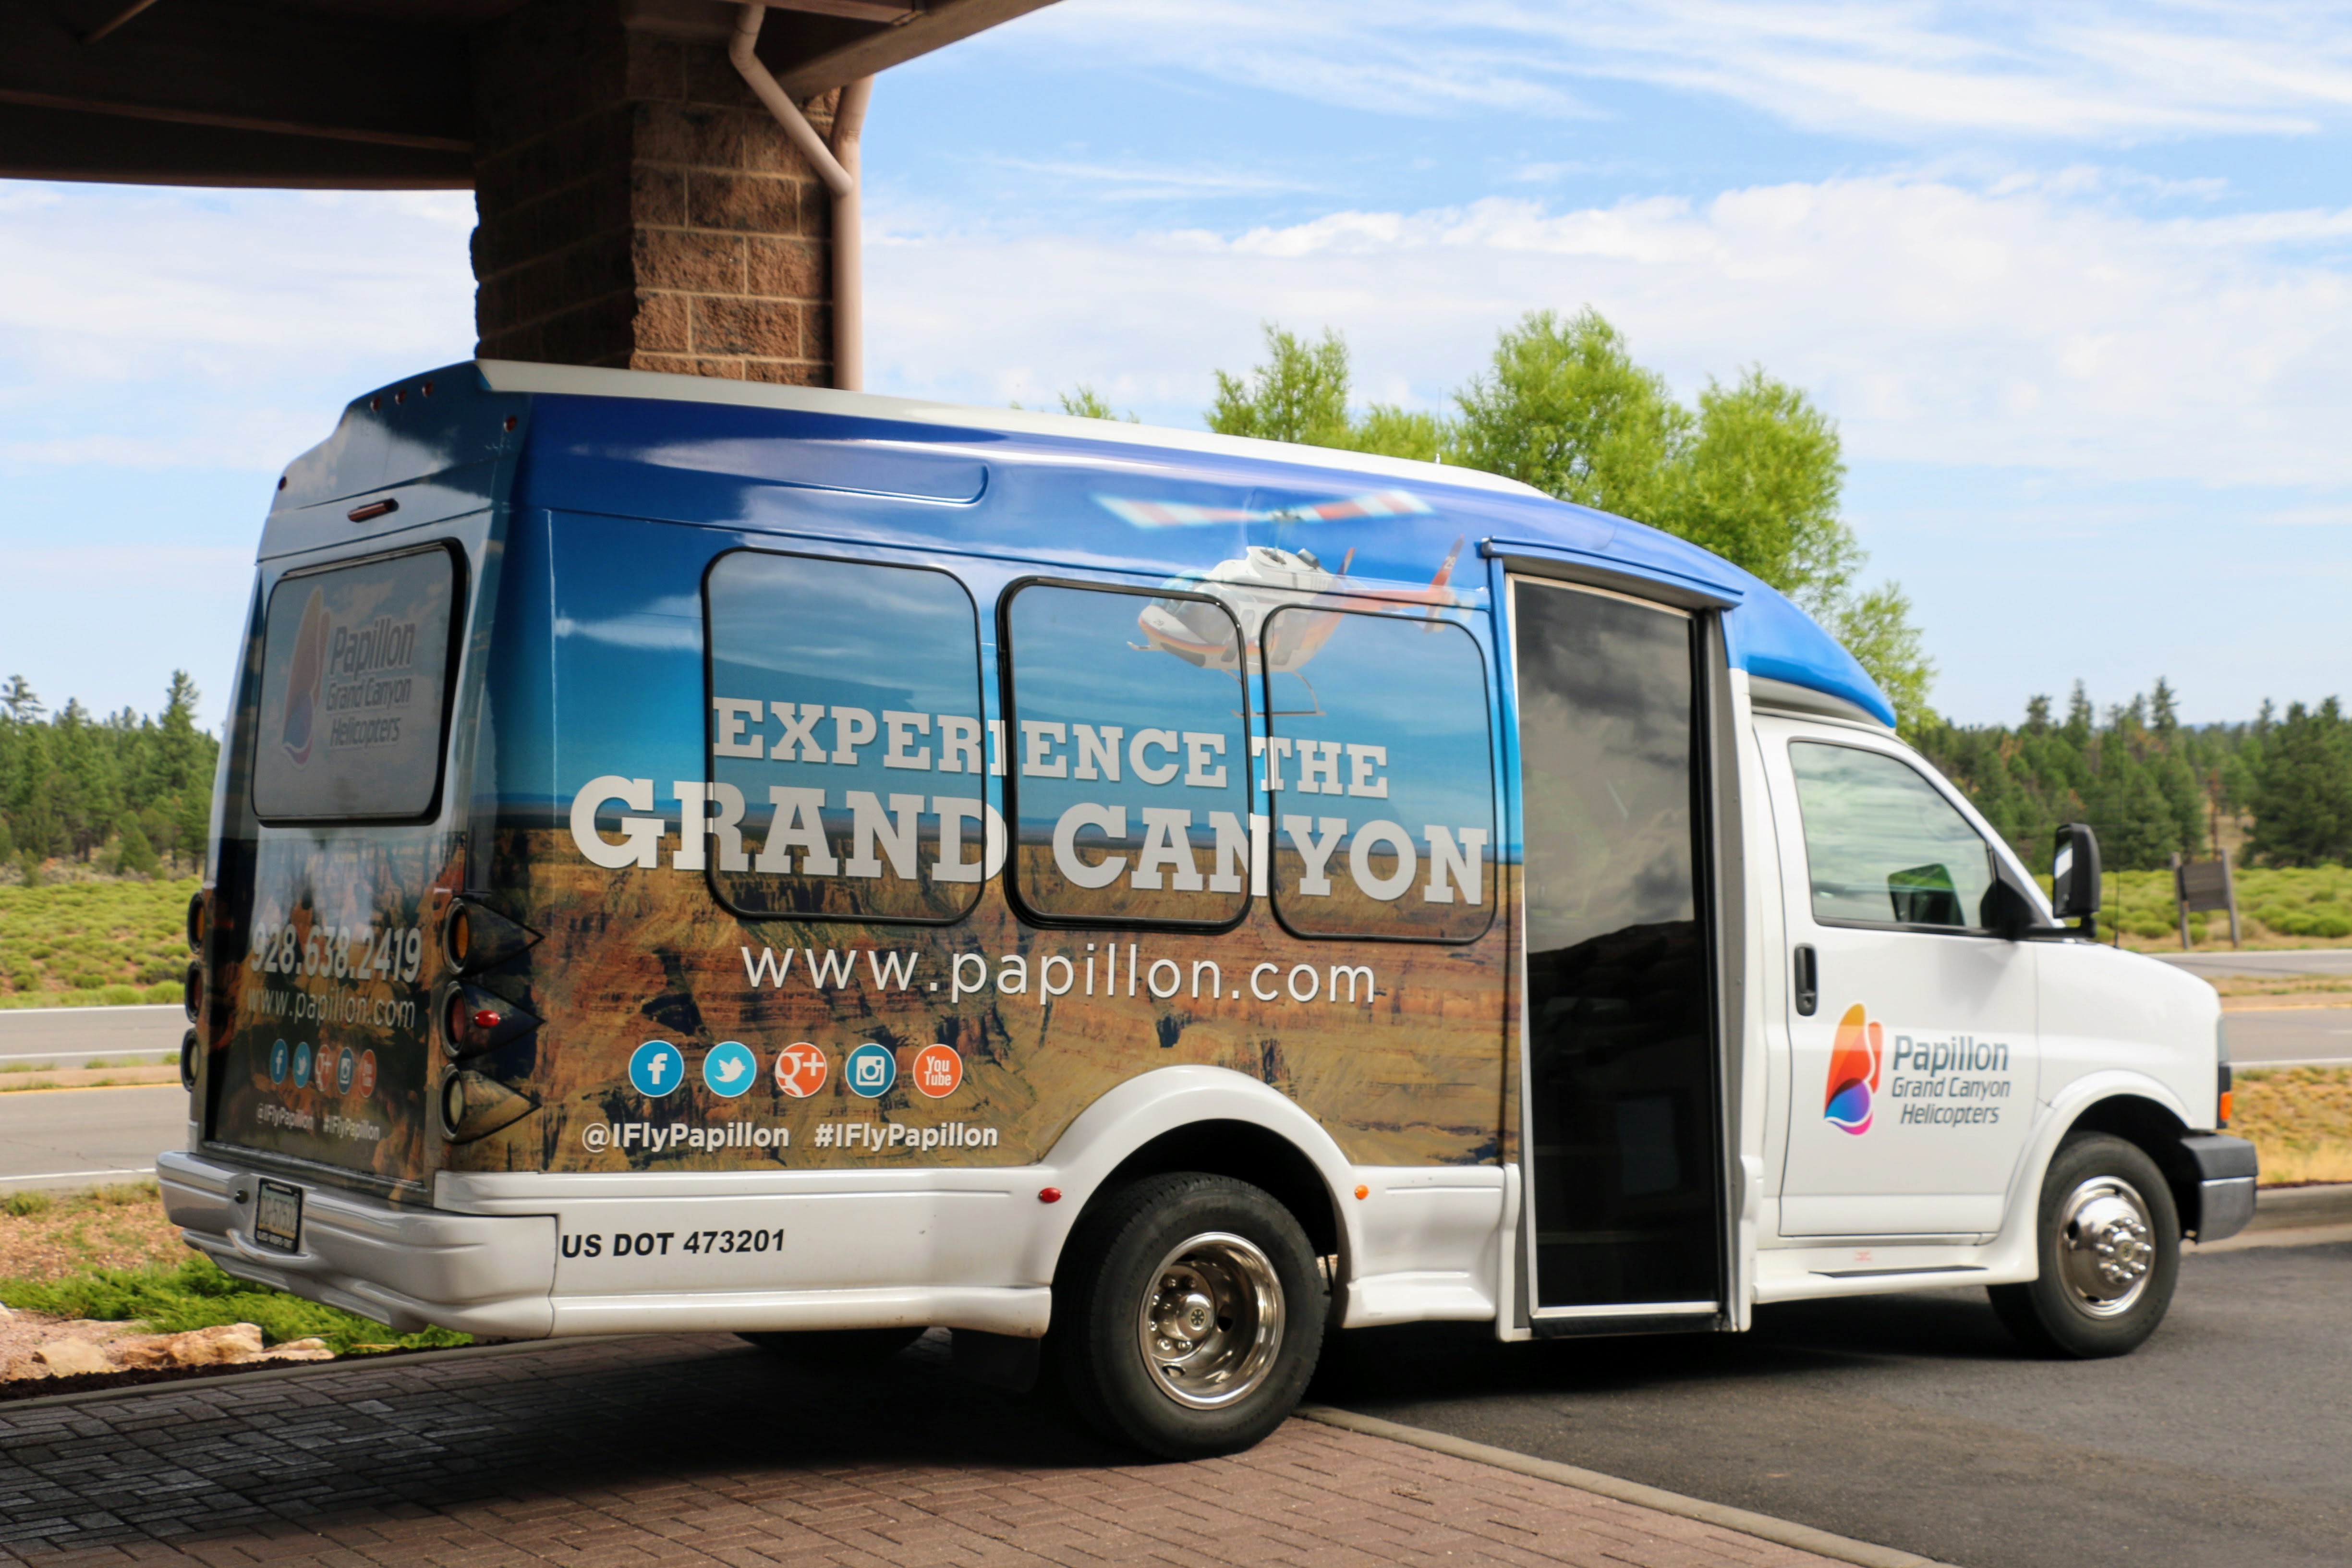 Experience the Grand Canyon